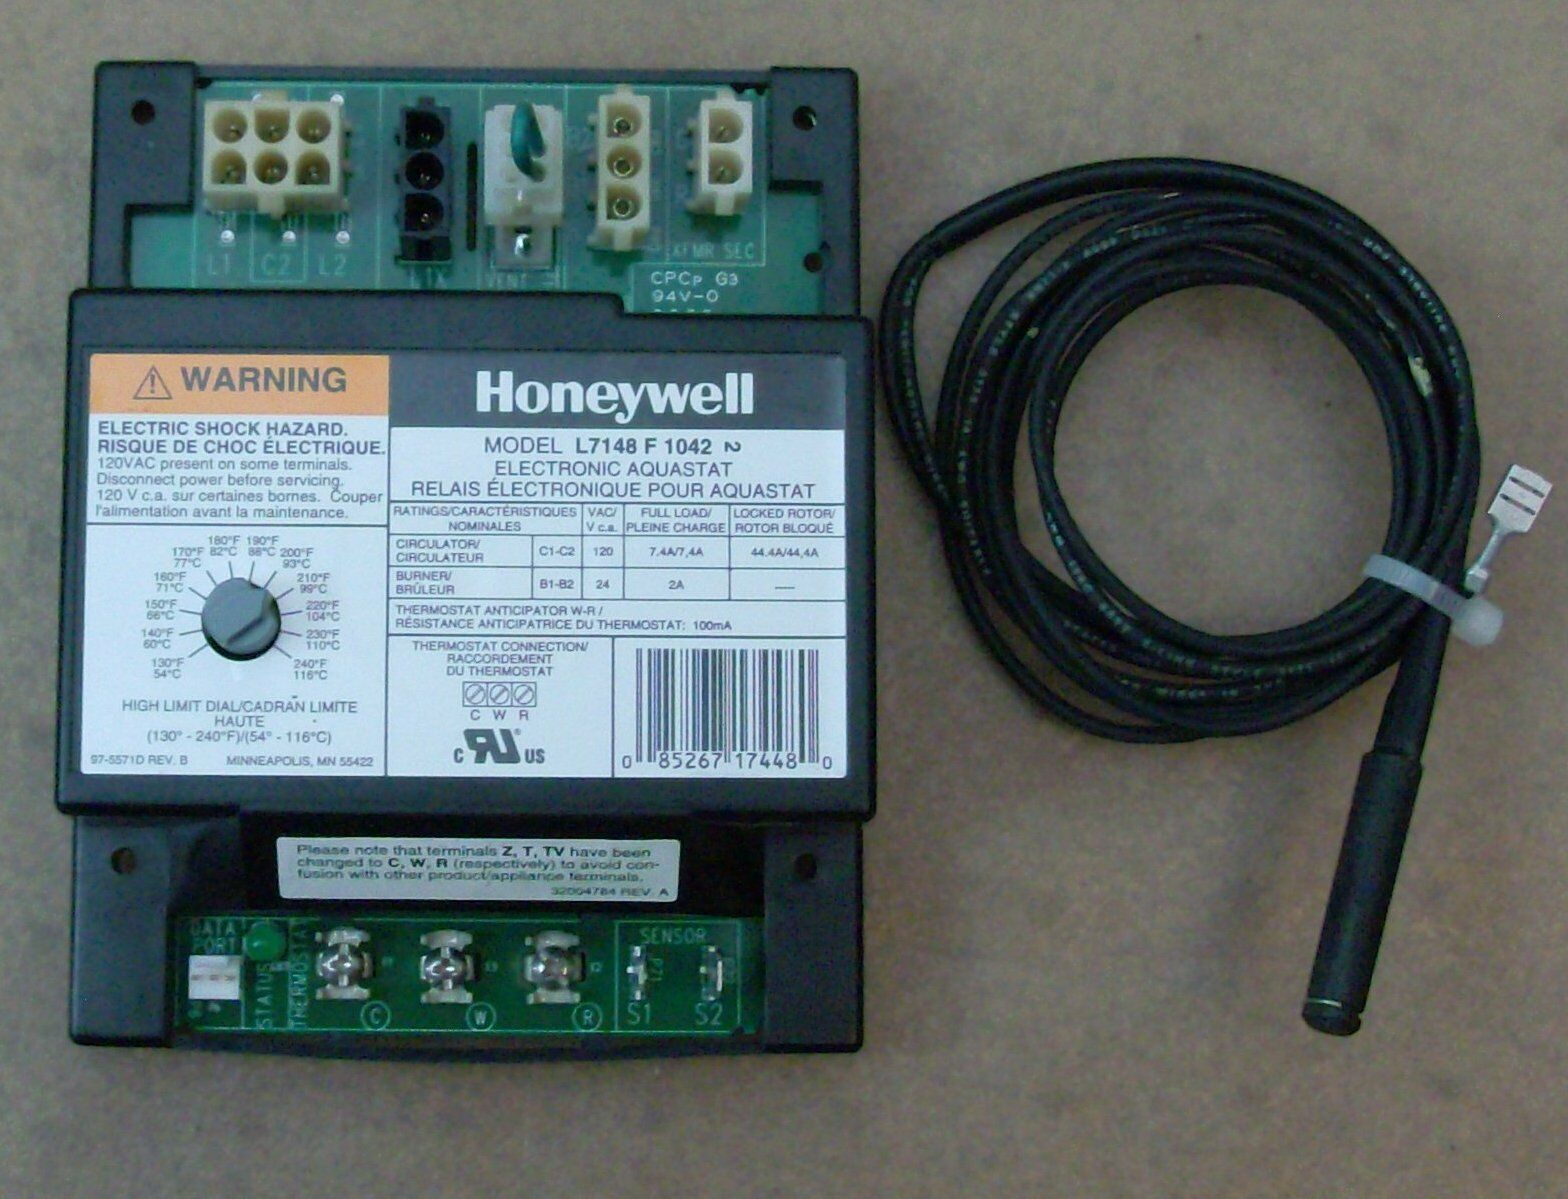 Factory Refurbish Honeywell Aquastat L7148f 1042 1075 Oem Is20205 6117 Air Pressure Switch Hk06wc100 Ebay Norton Secured Powered By Verisign